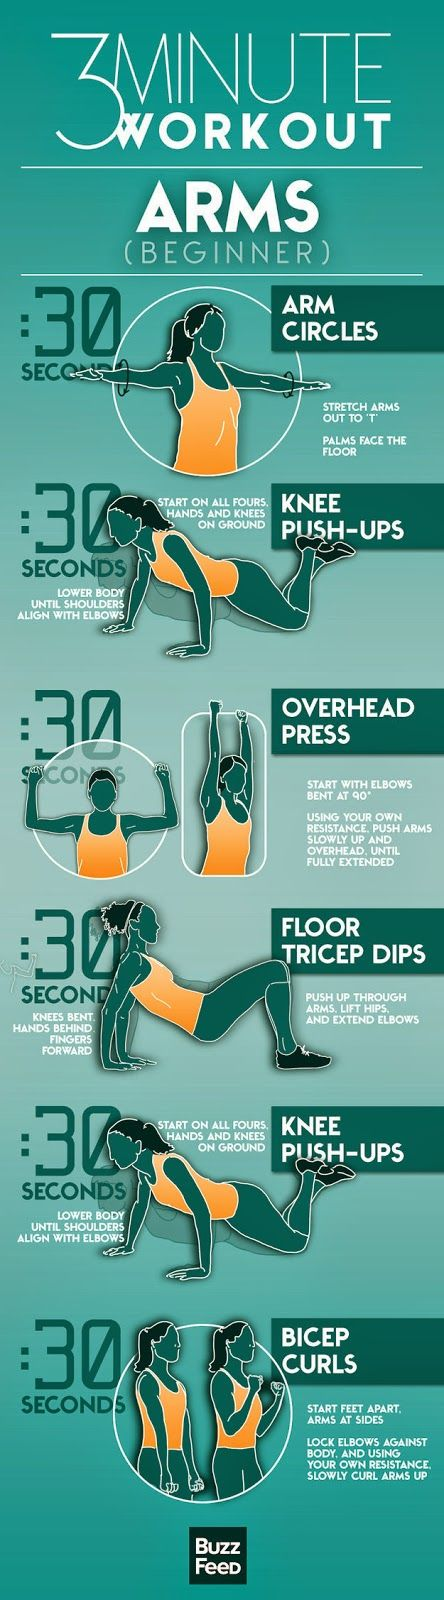 3-Minute Workout For Amazing Arms.jpg (444×1600